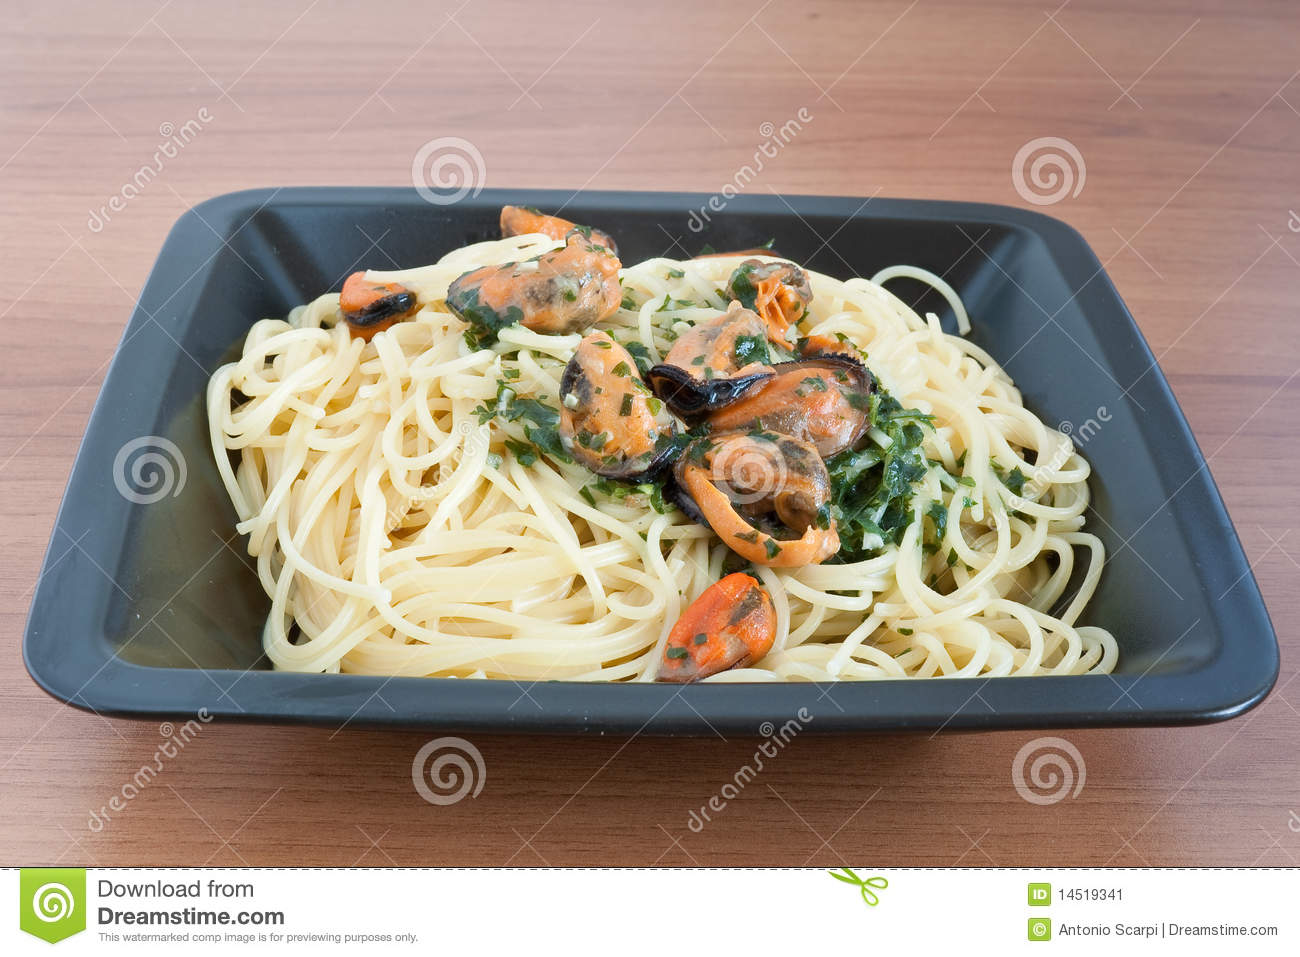 Typical italian cooking: spaghetti with mussels and garlic.